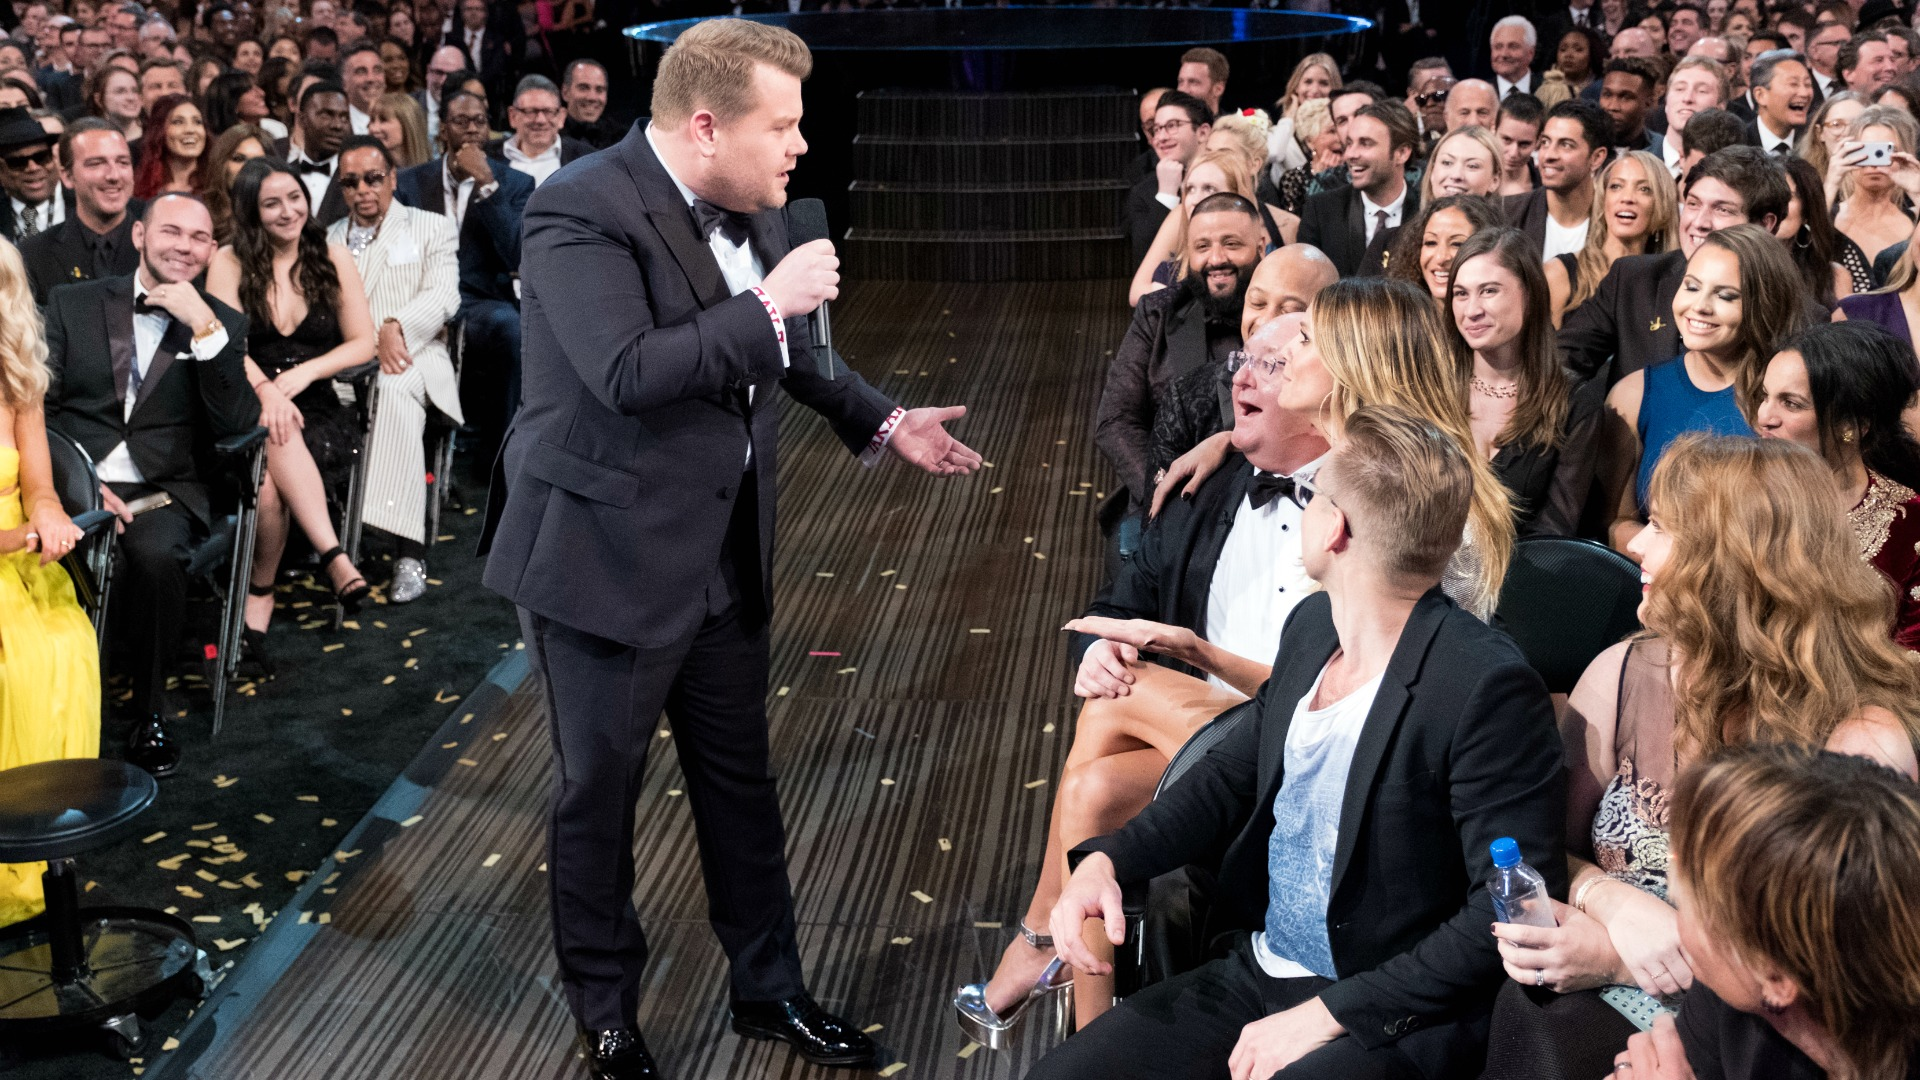 James Corden was shocked to find model Heidi Klum—instead of his mum—sitting on his dad Malcolm's lap.